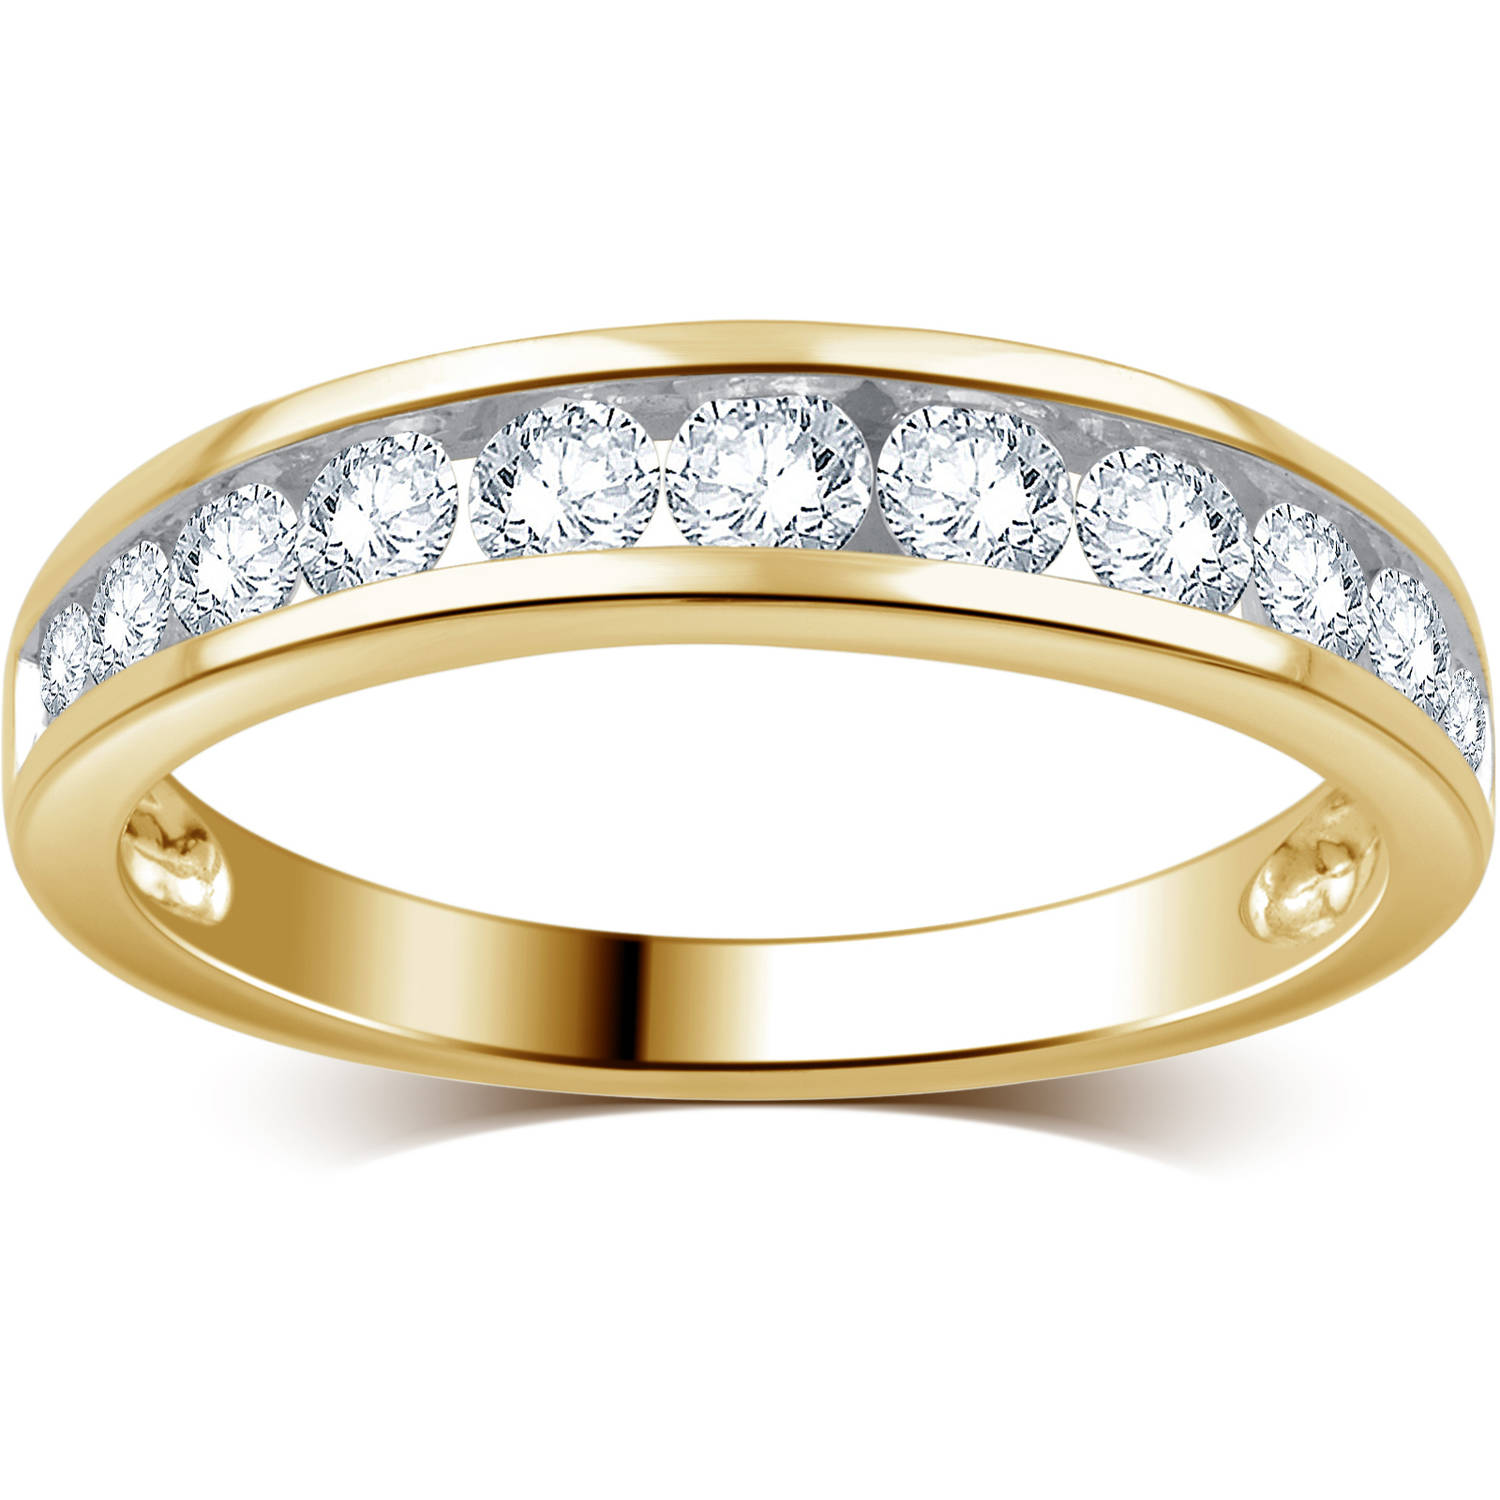 3 4 Carat T.W. Round Diamond 10kt Yellow Gold Wedding Band, I-J I2-I3 by Generic